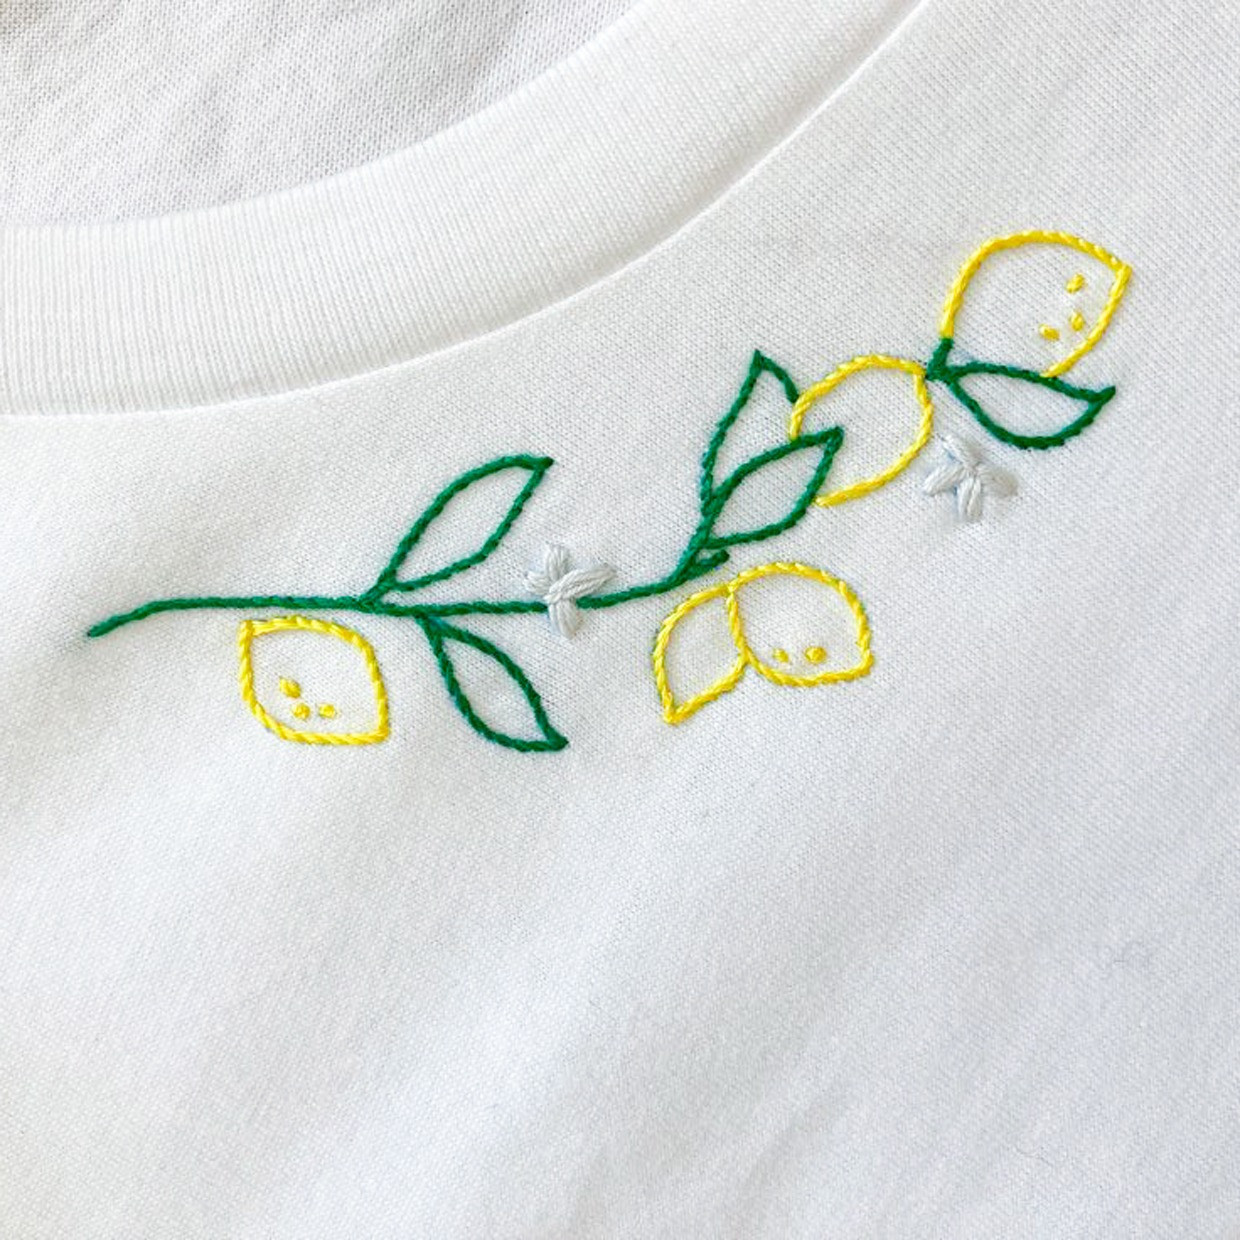 The LIMONE slim fit tee